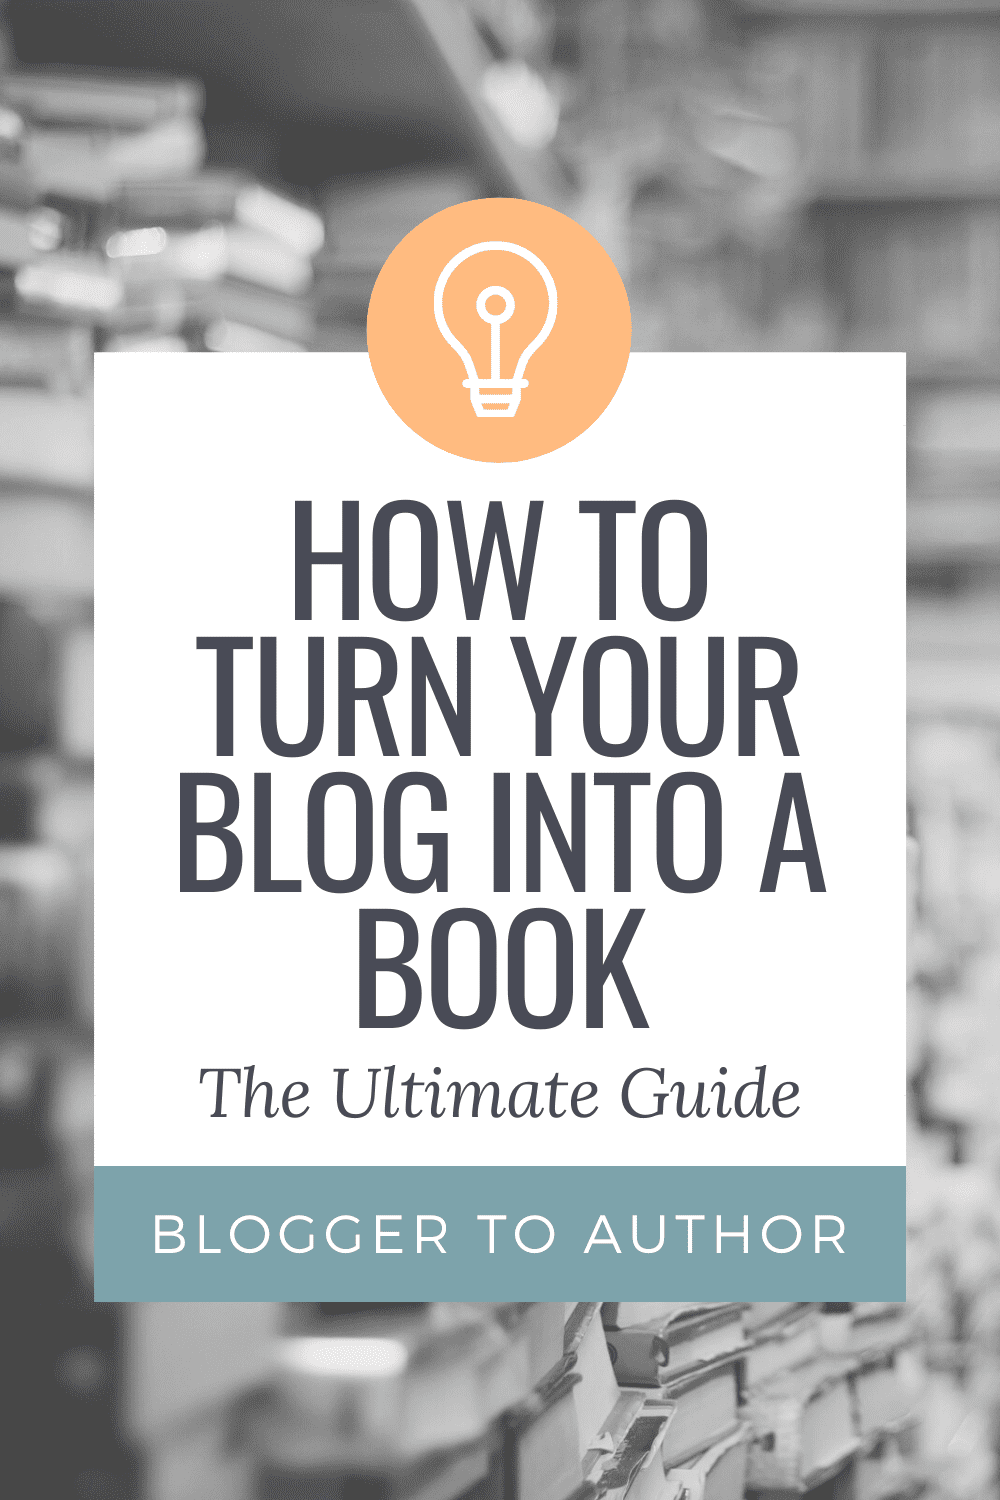 How to Turn Your Blog into a Book: The Ultimate Guide